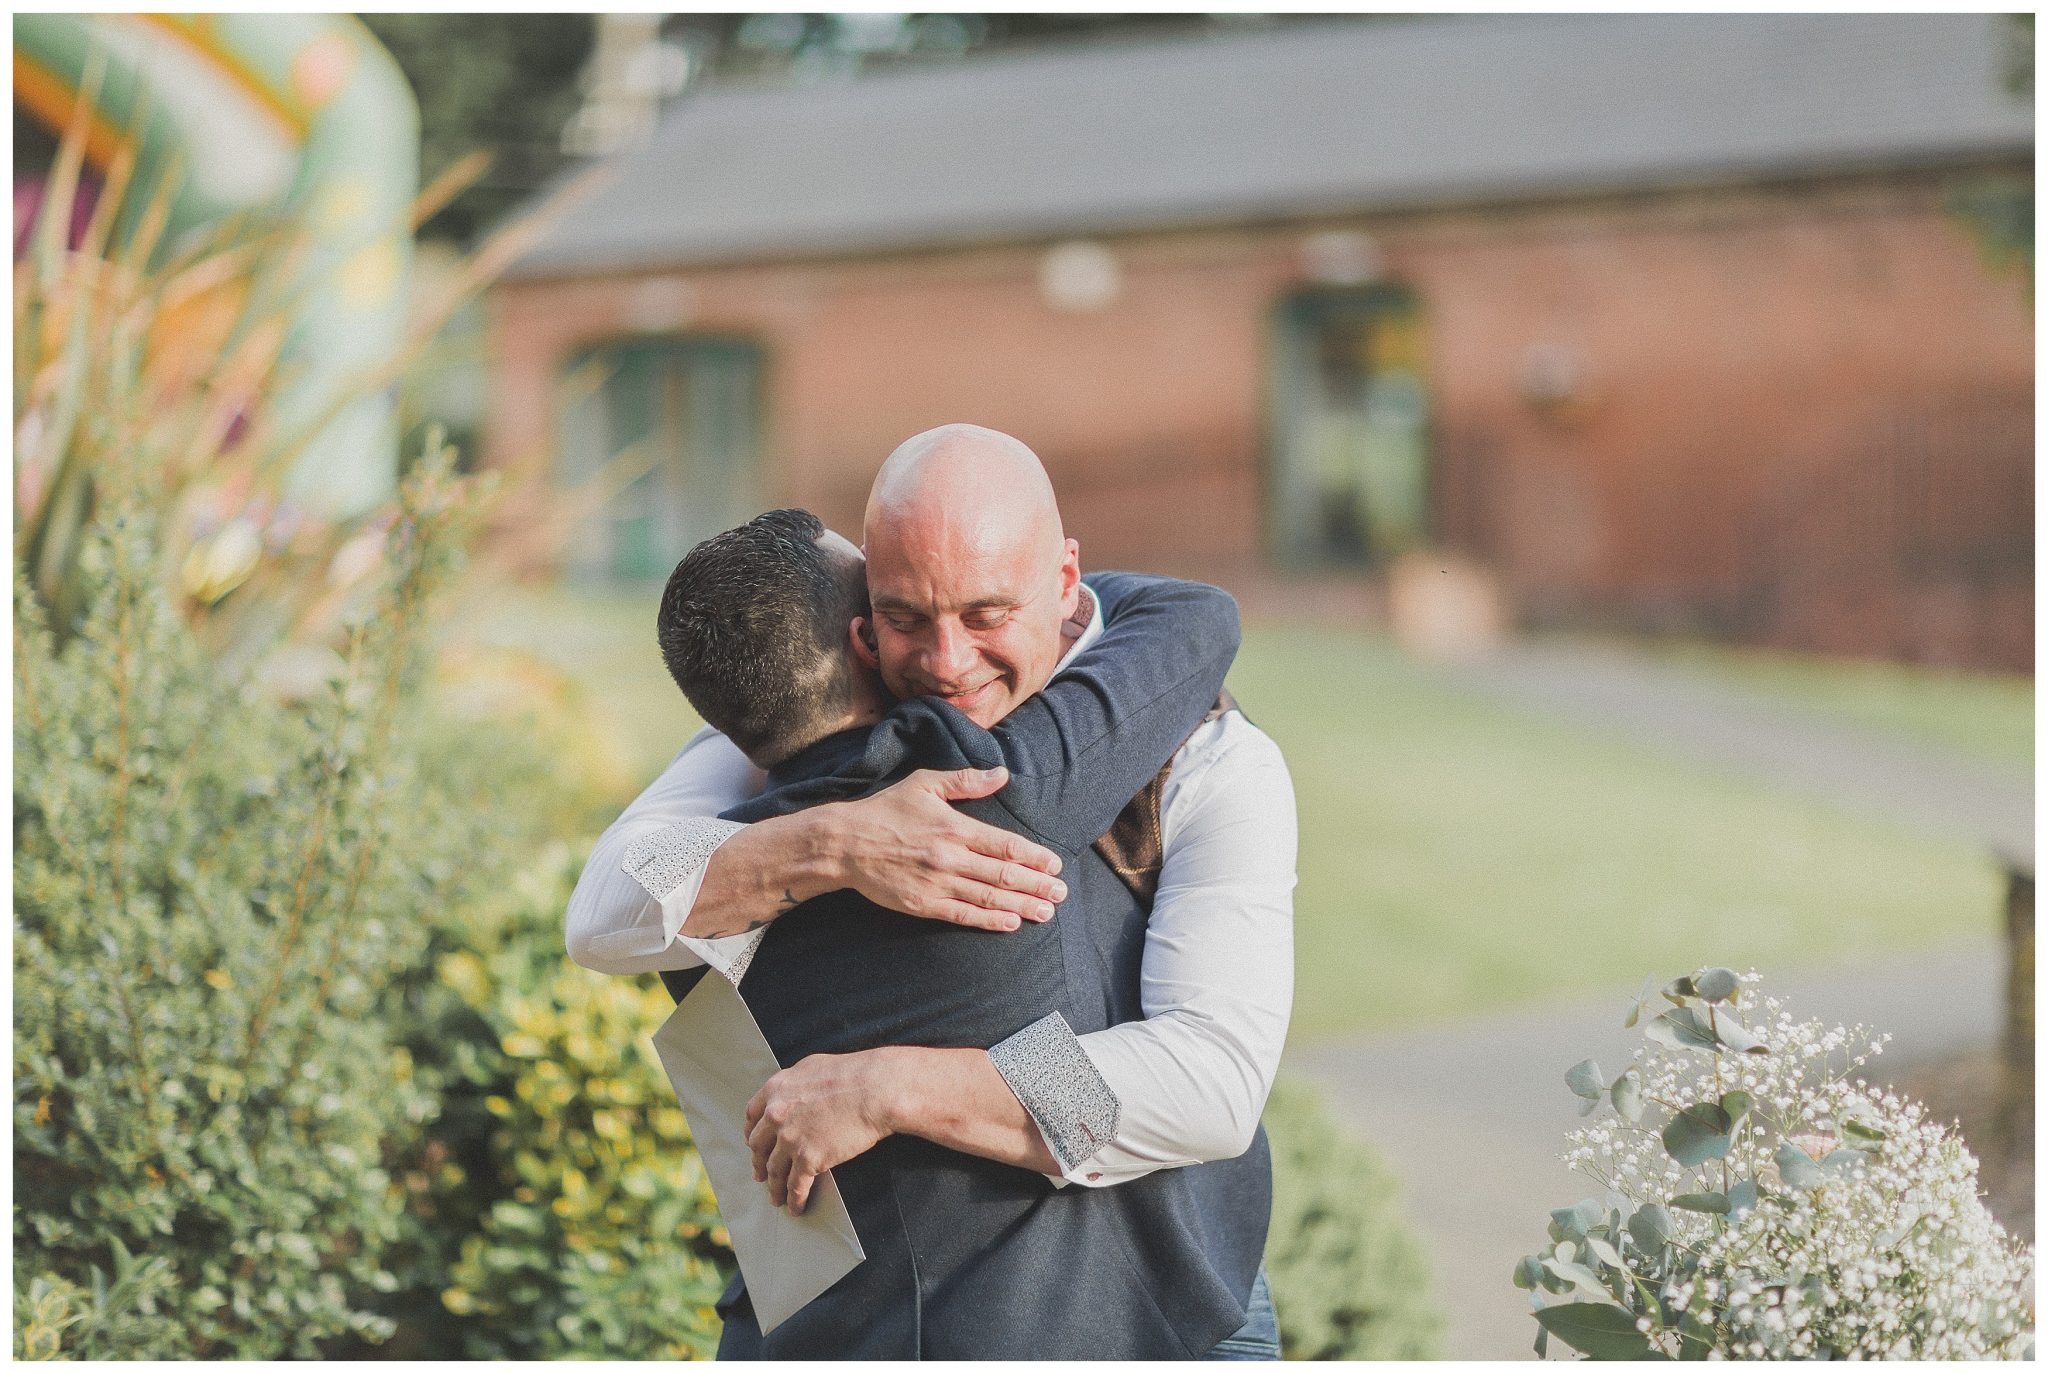 One of the guests hugging the groom